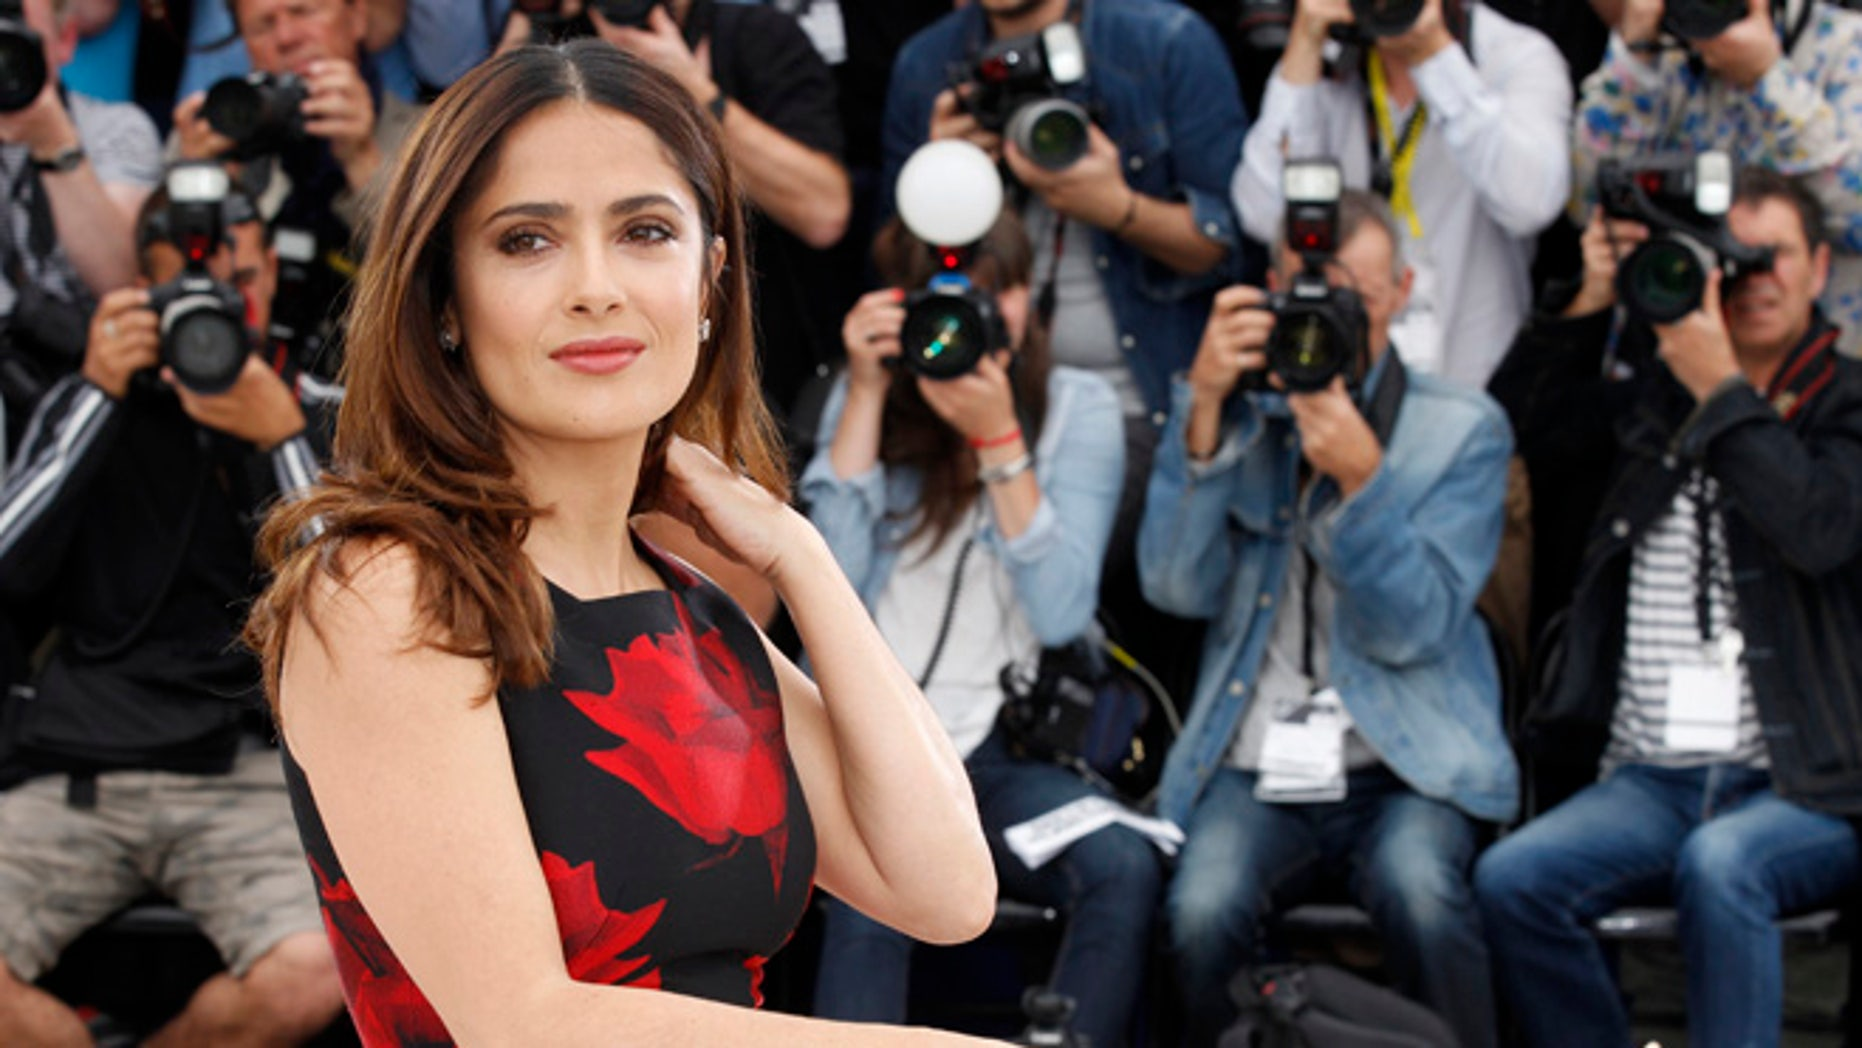 Actress Salma Hayek poses for photographers during a photo call for the film Tale of Tales, at the 68th international film festival, Cannes, southern France, Thursday, May 14, 2015. (AP Photo/Lionel Cironneau)